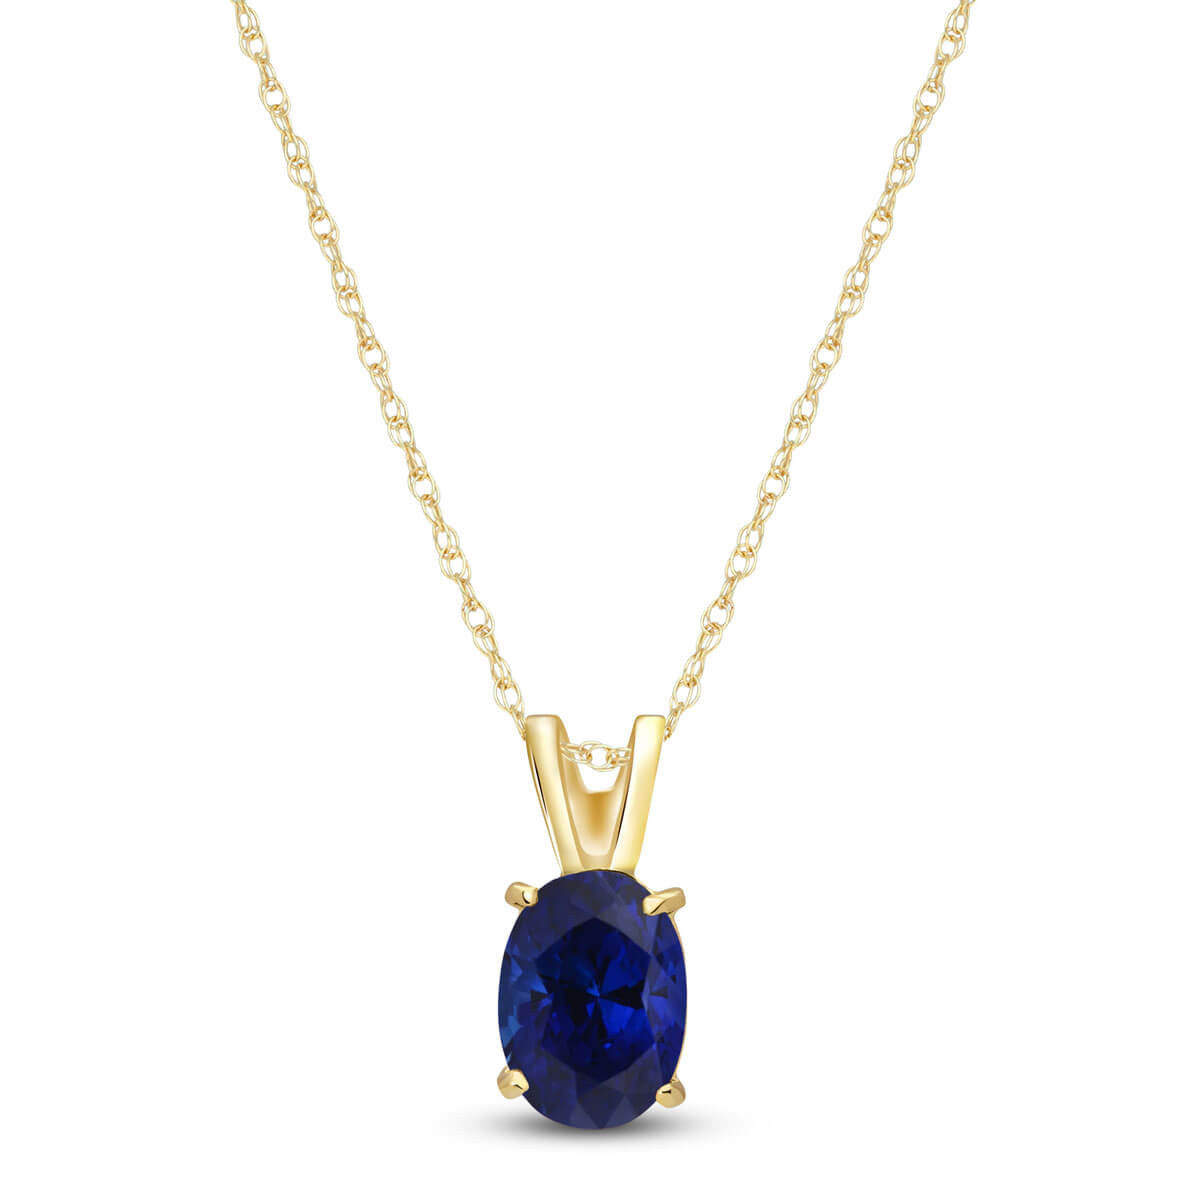 Sapphire Oval Pendant Necklace 1 ct in 9ct Gold